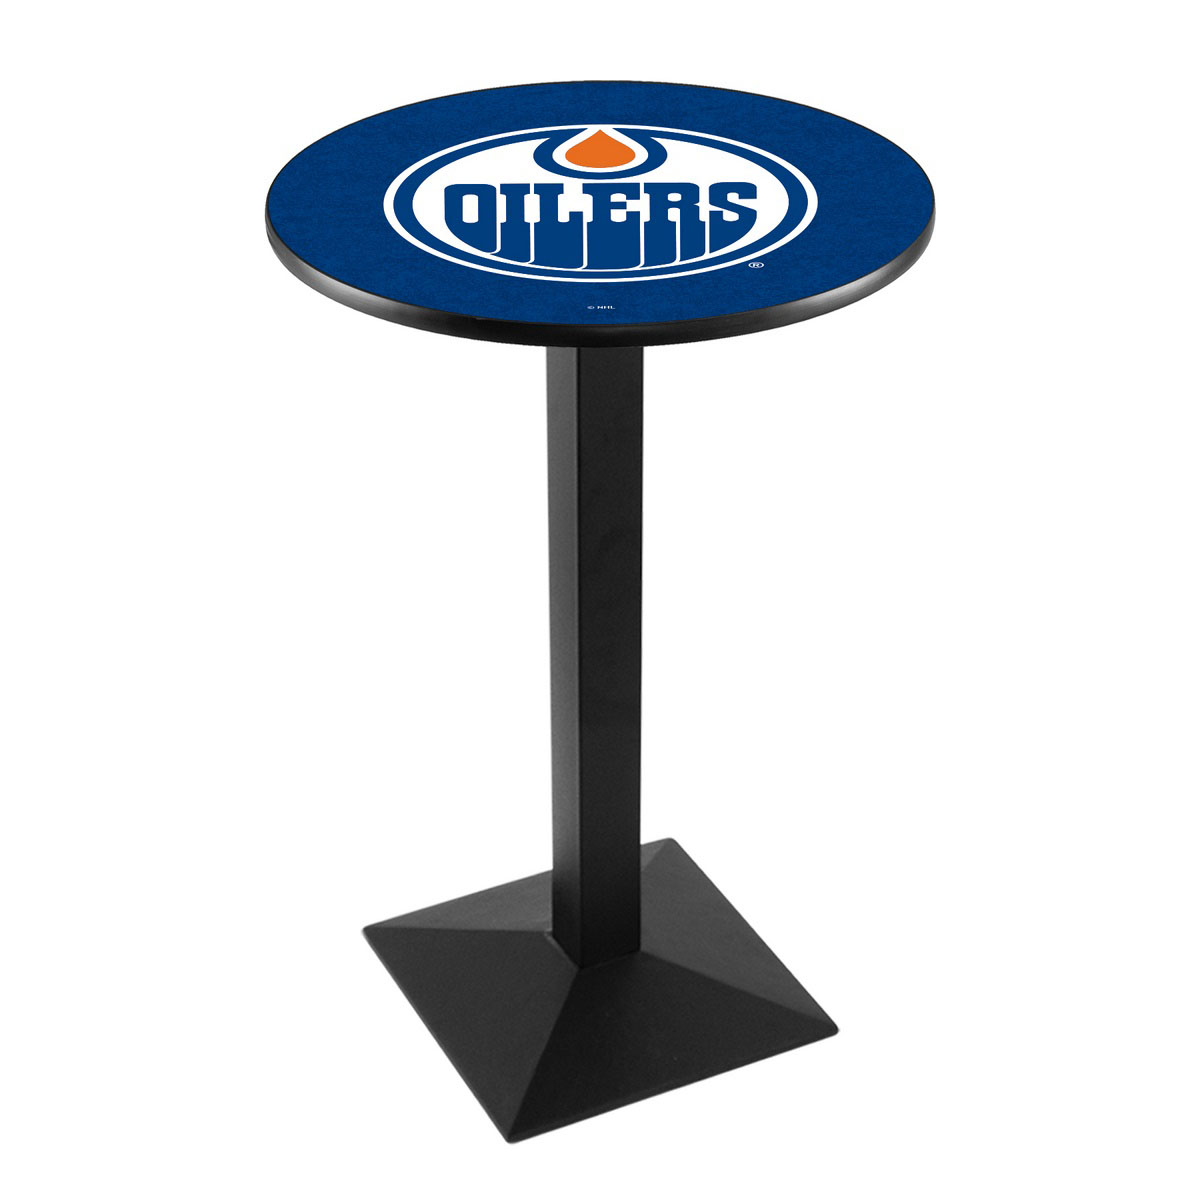 Lovable Edmonton Oilers Logo Pub Bar Table Square Stand Product Photo